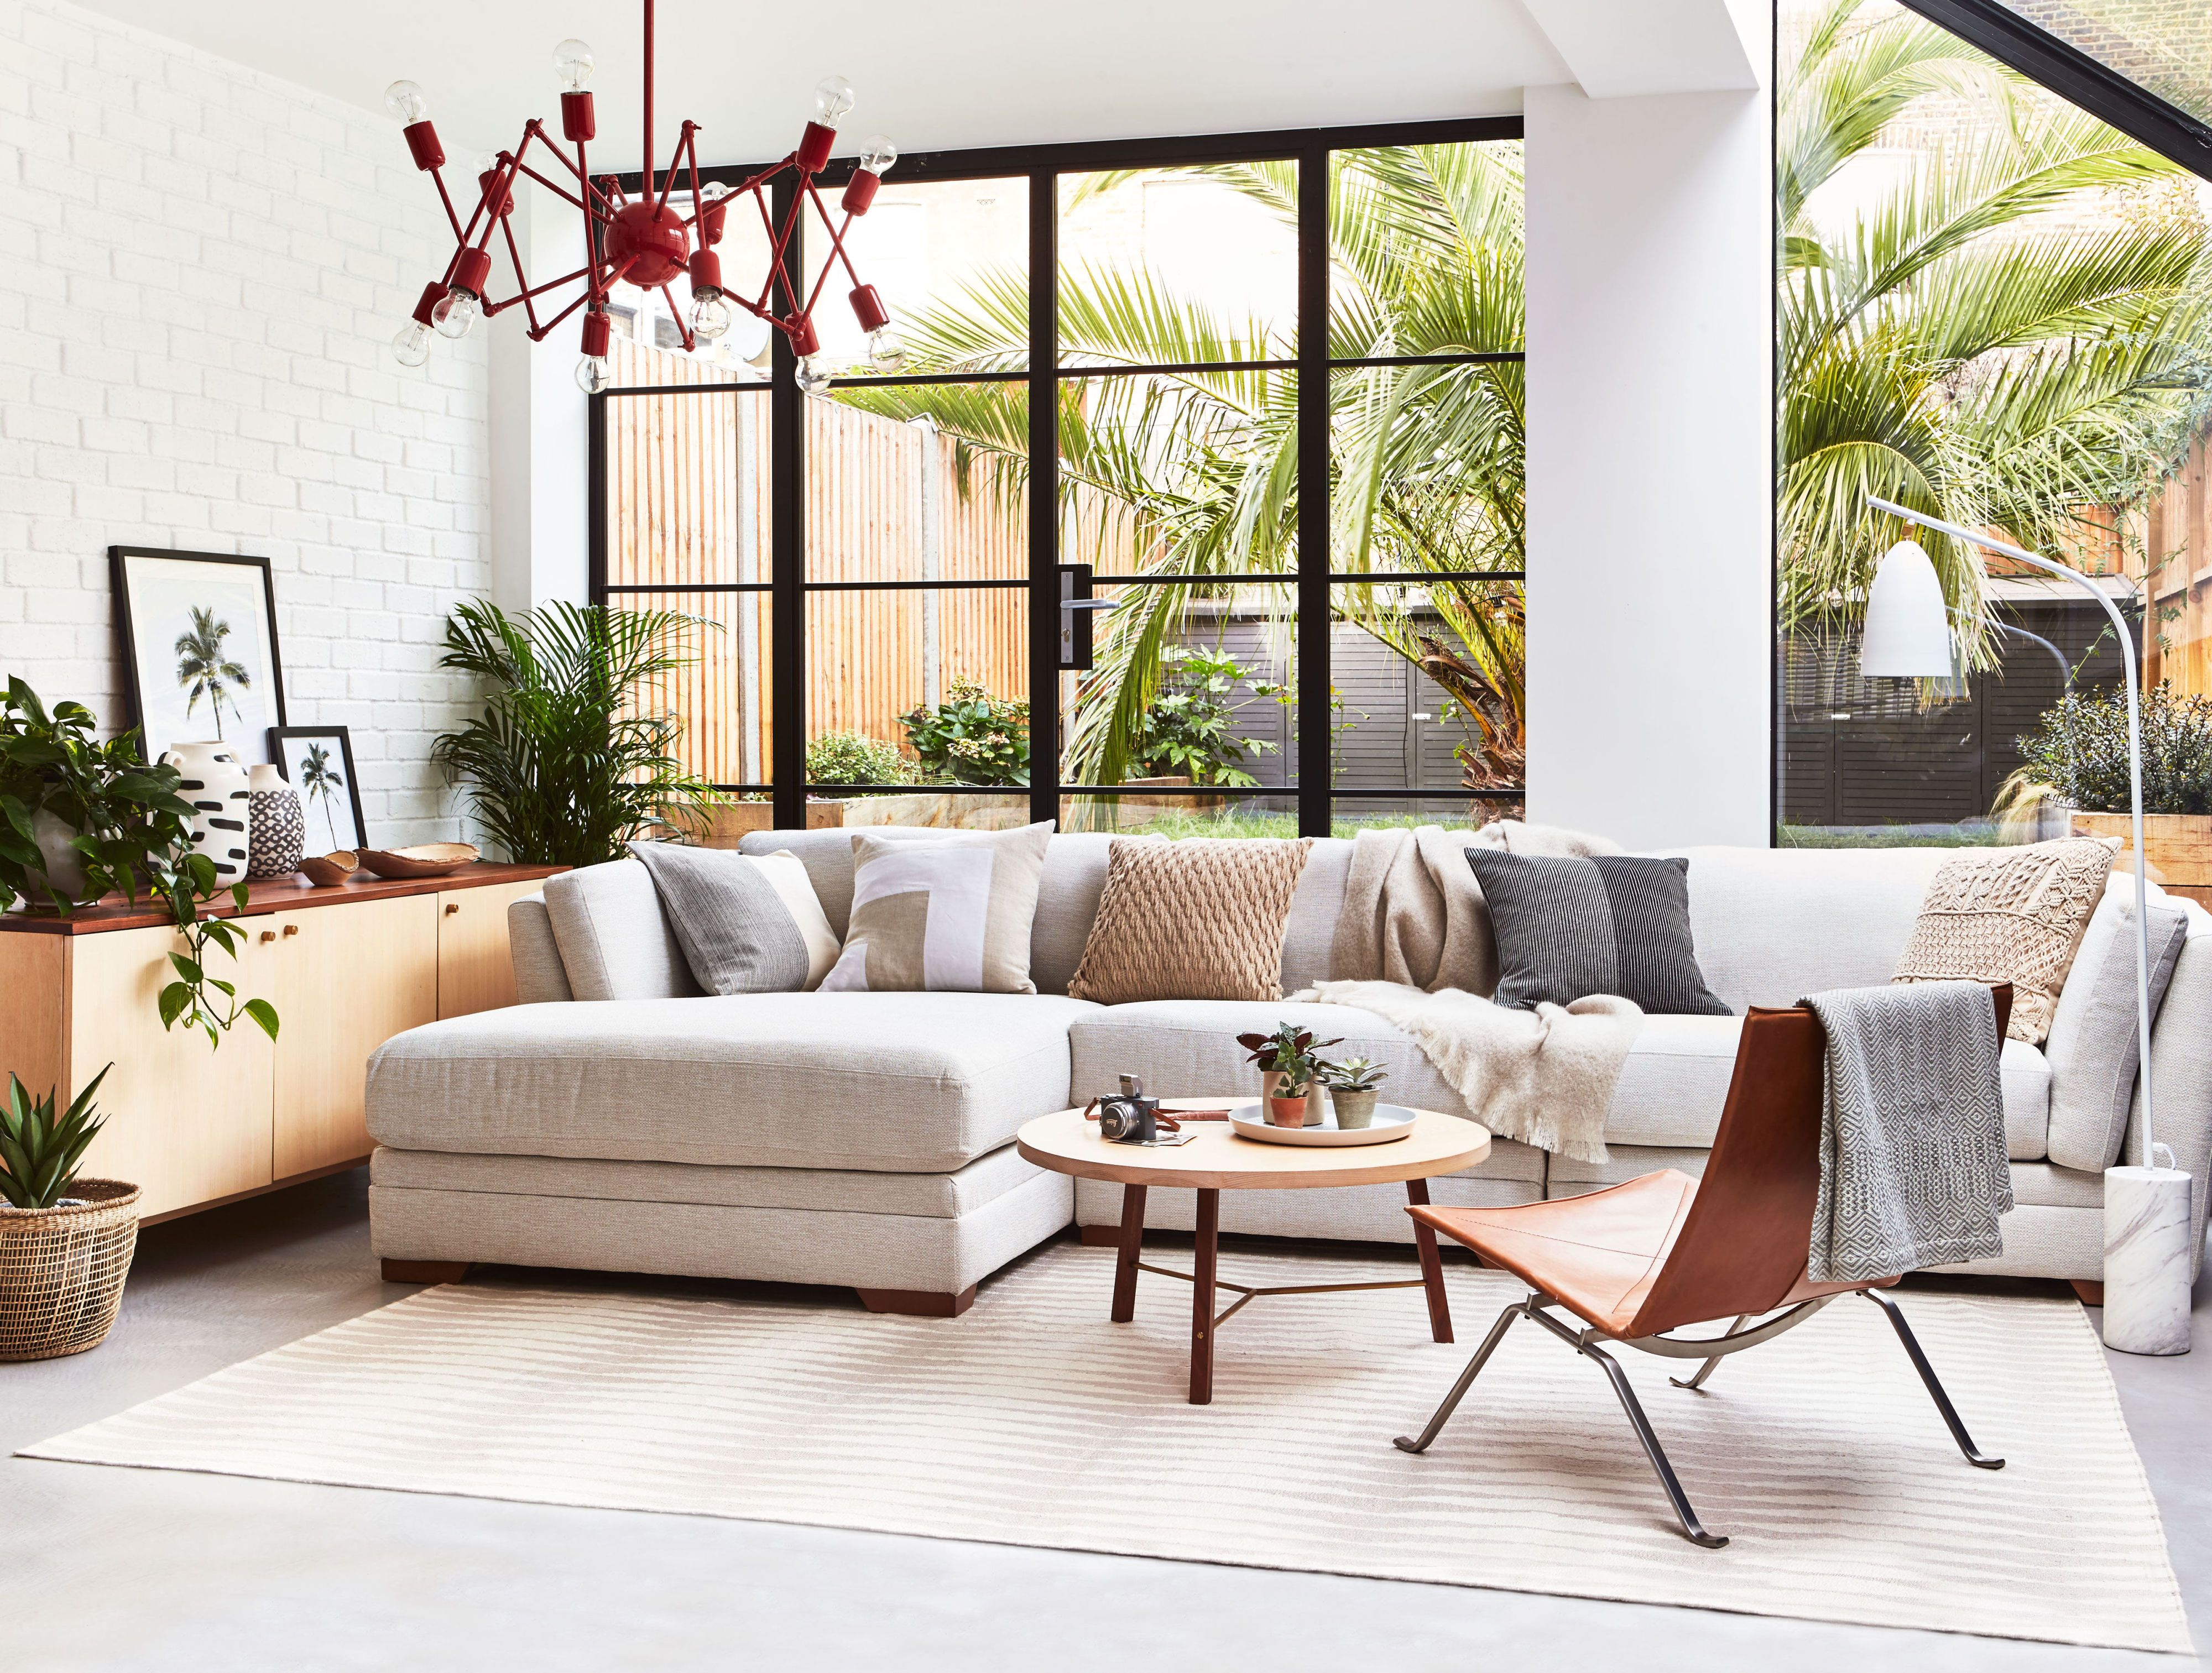 Modular Long Beach Sofa   House Beautiful Collection At DFS